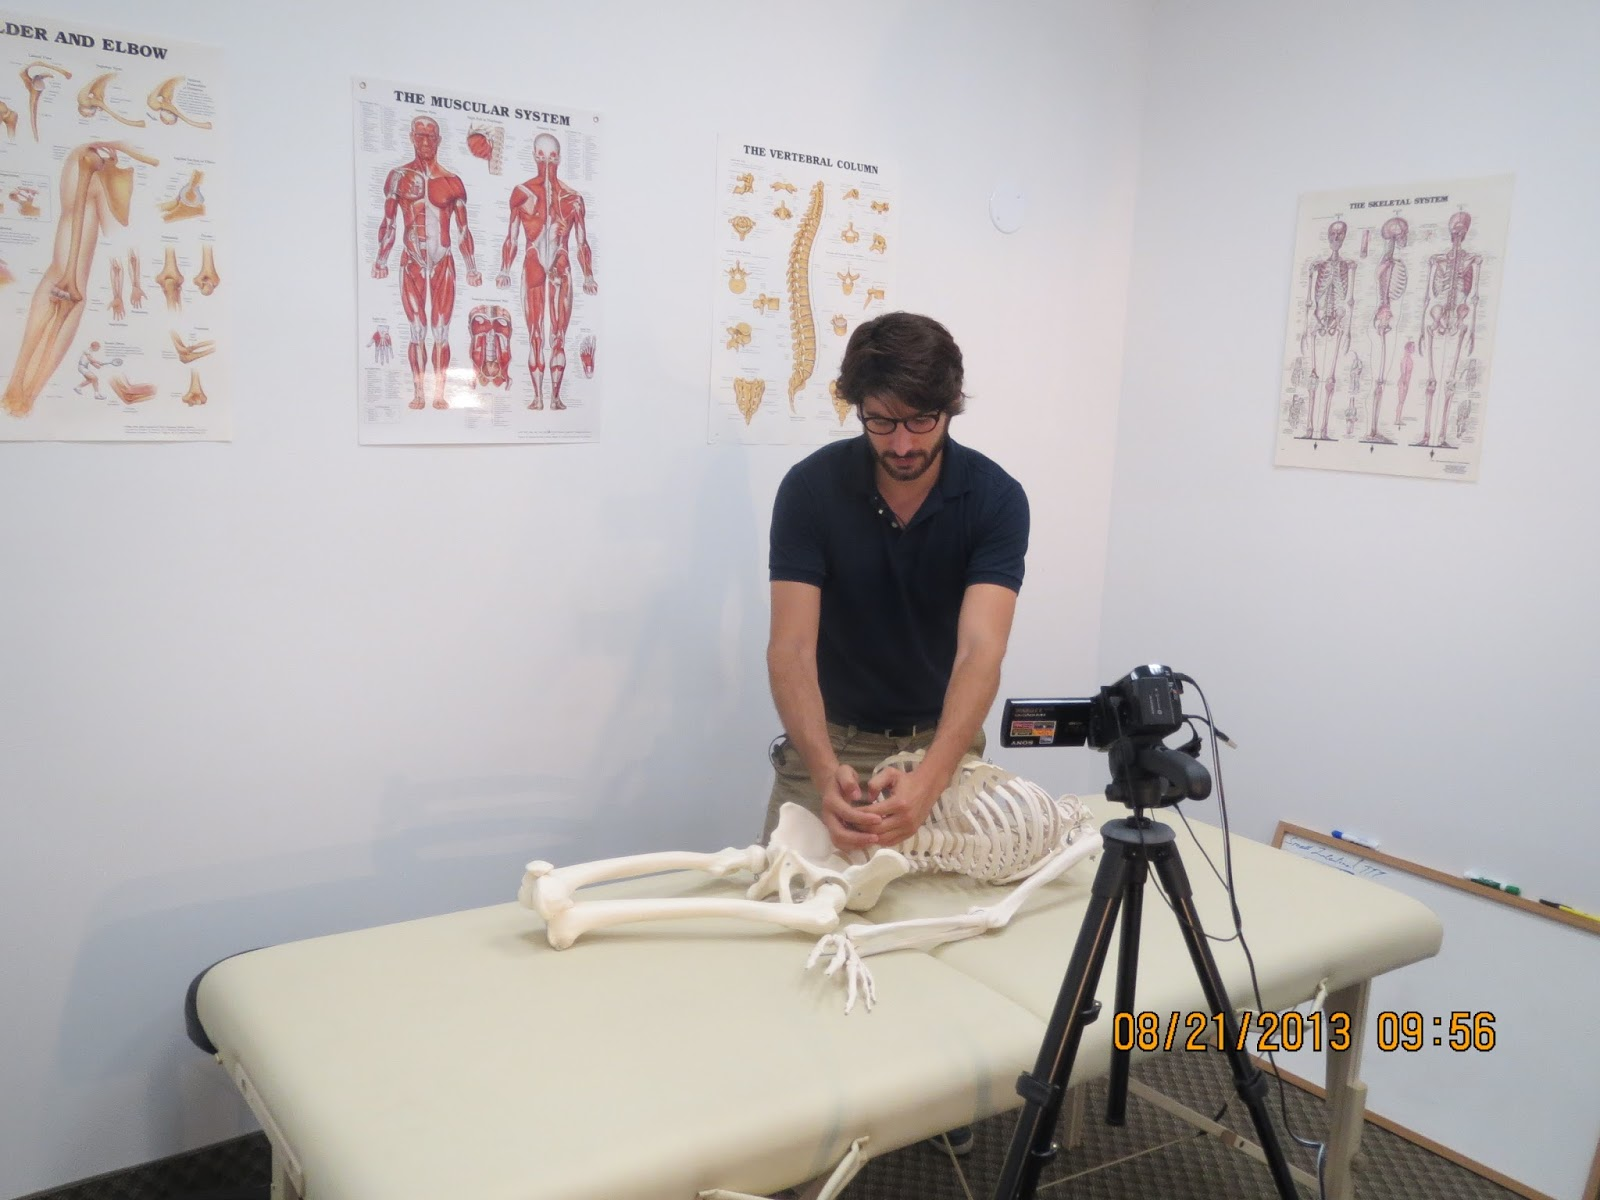 osteopathic manual practitioner vacancies toronto